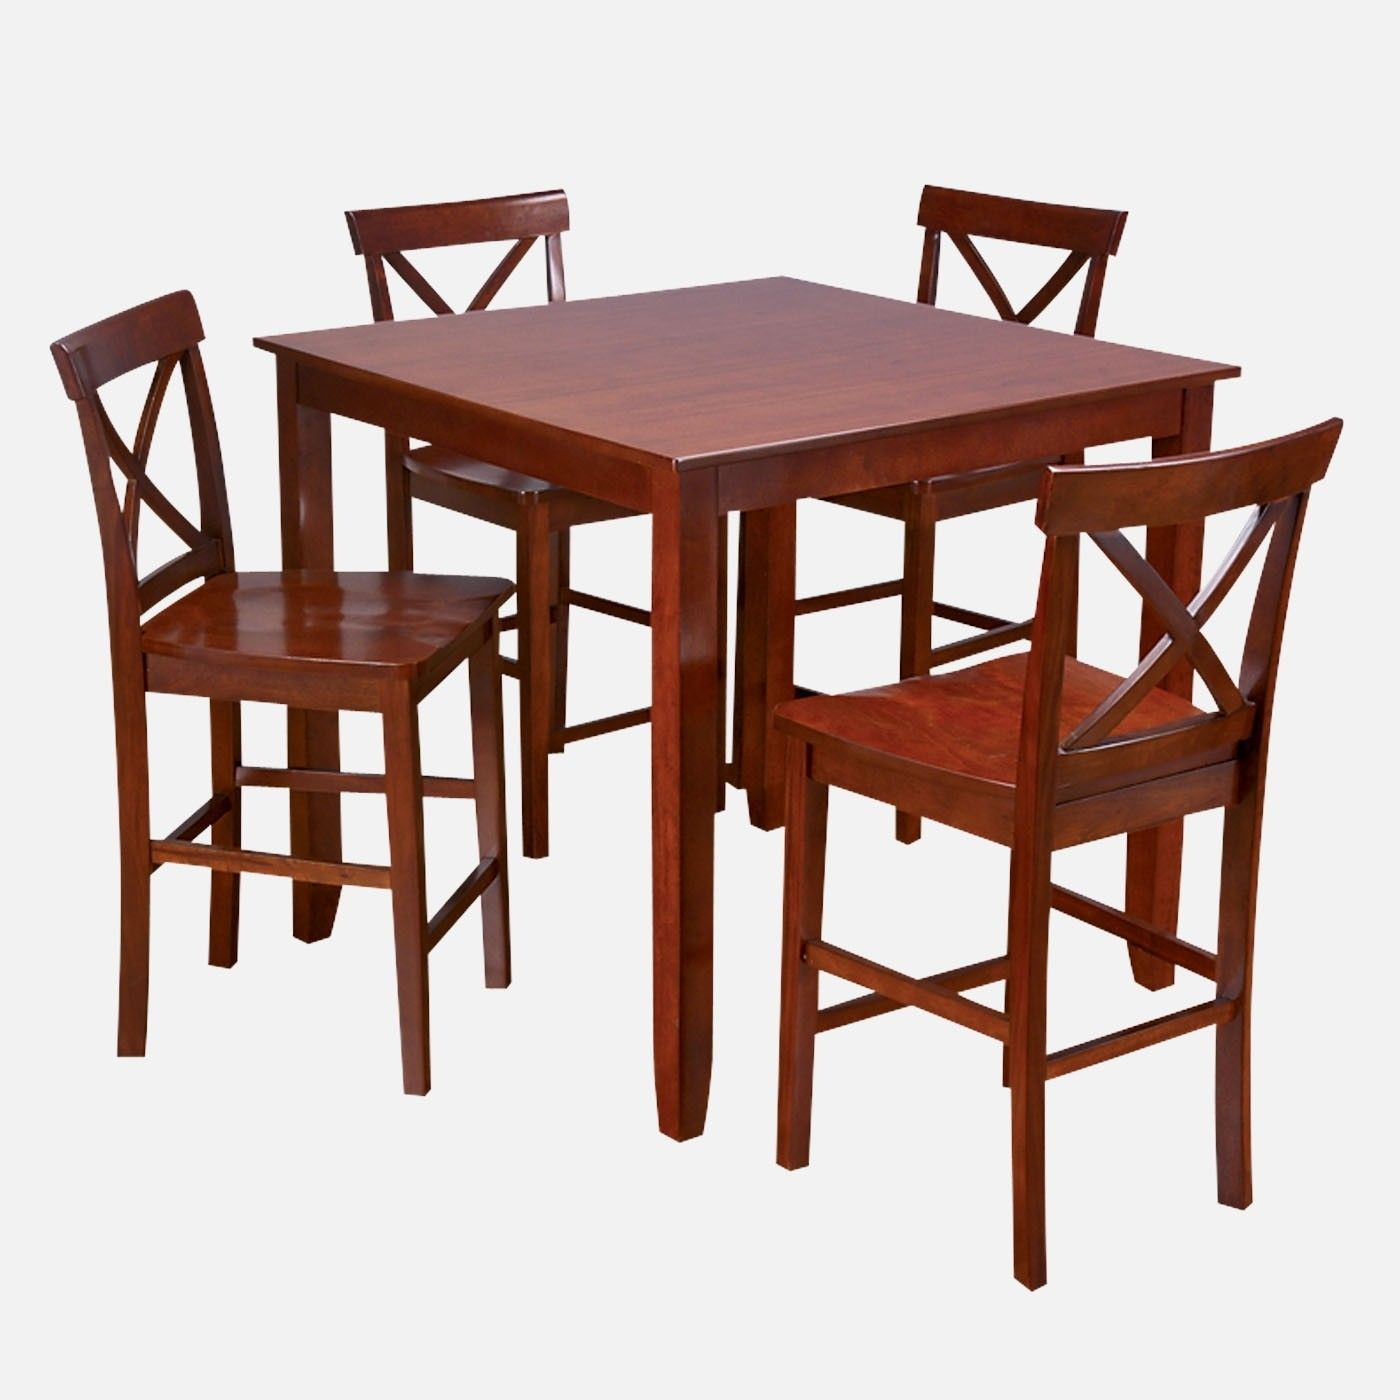 Dining Tables Chairs Hamilton 5 Piece High Dining Set Shopko Com 249 99 On Sale Pub Table And Chairs Dining Table Chairs Dining Set